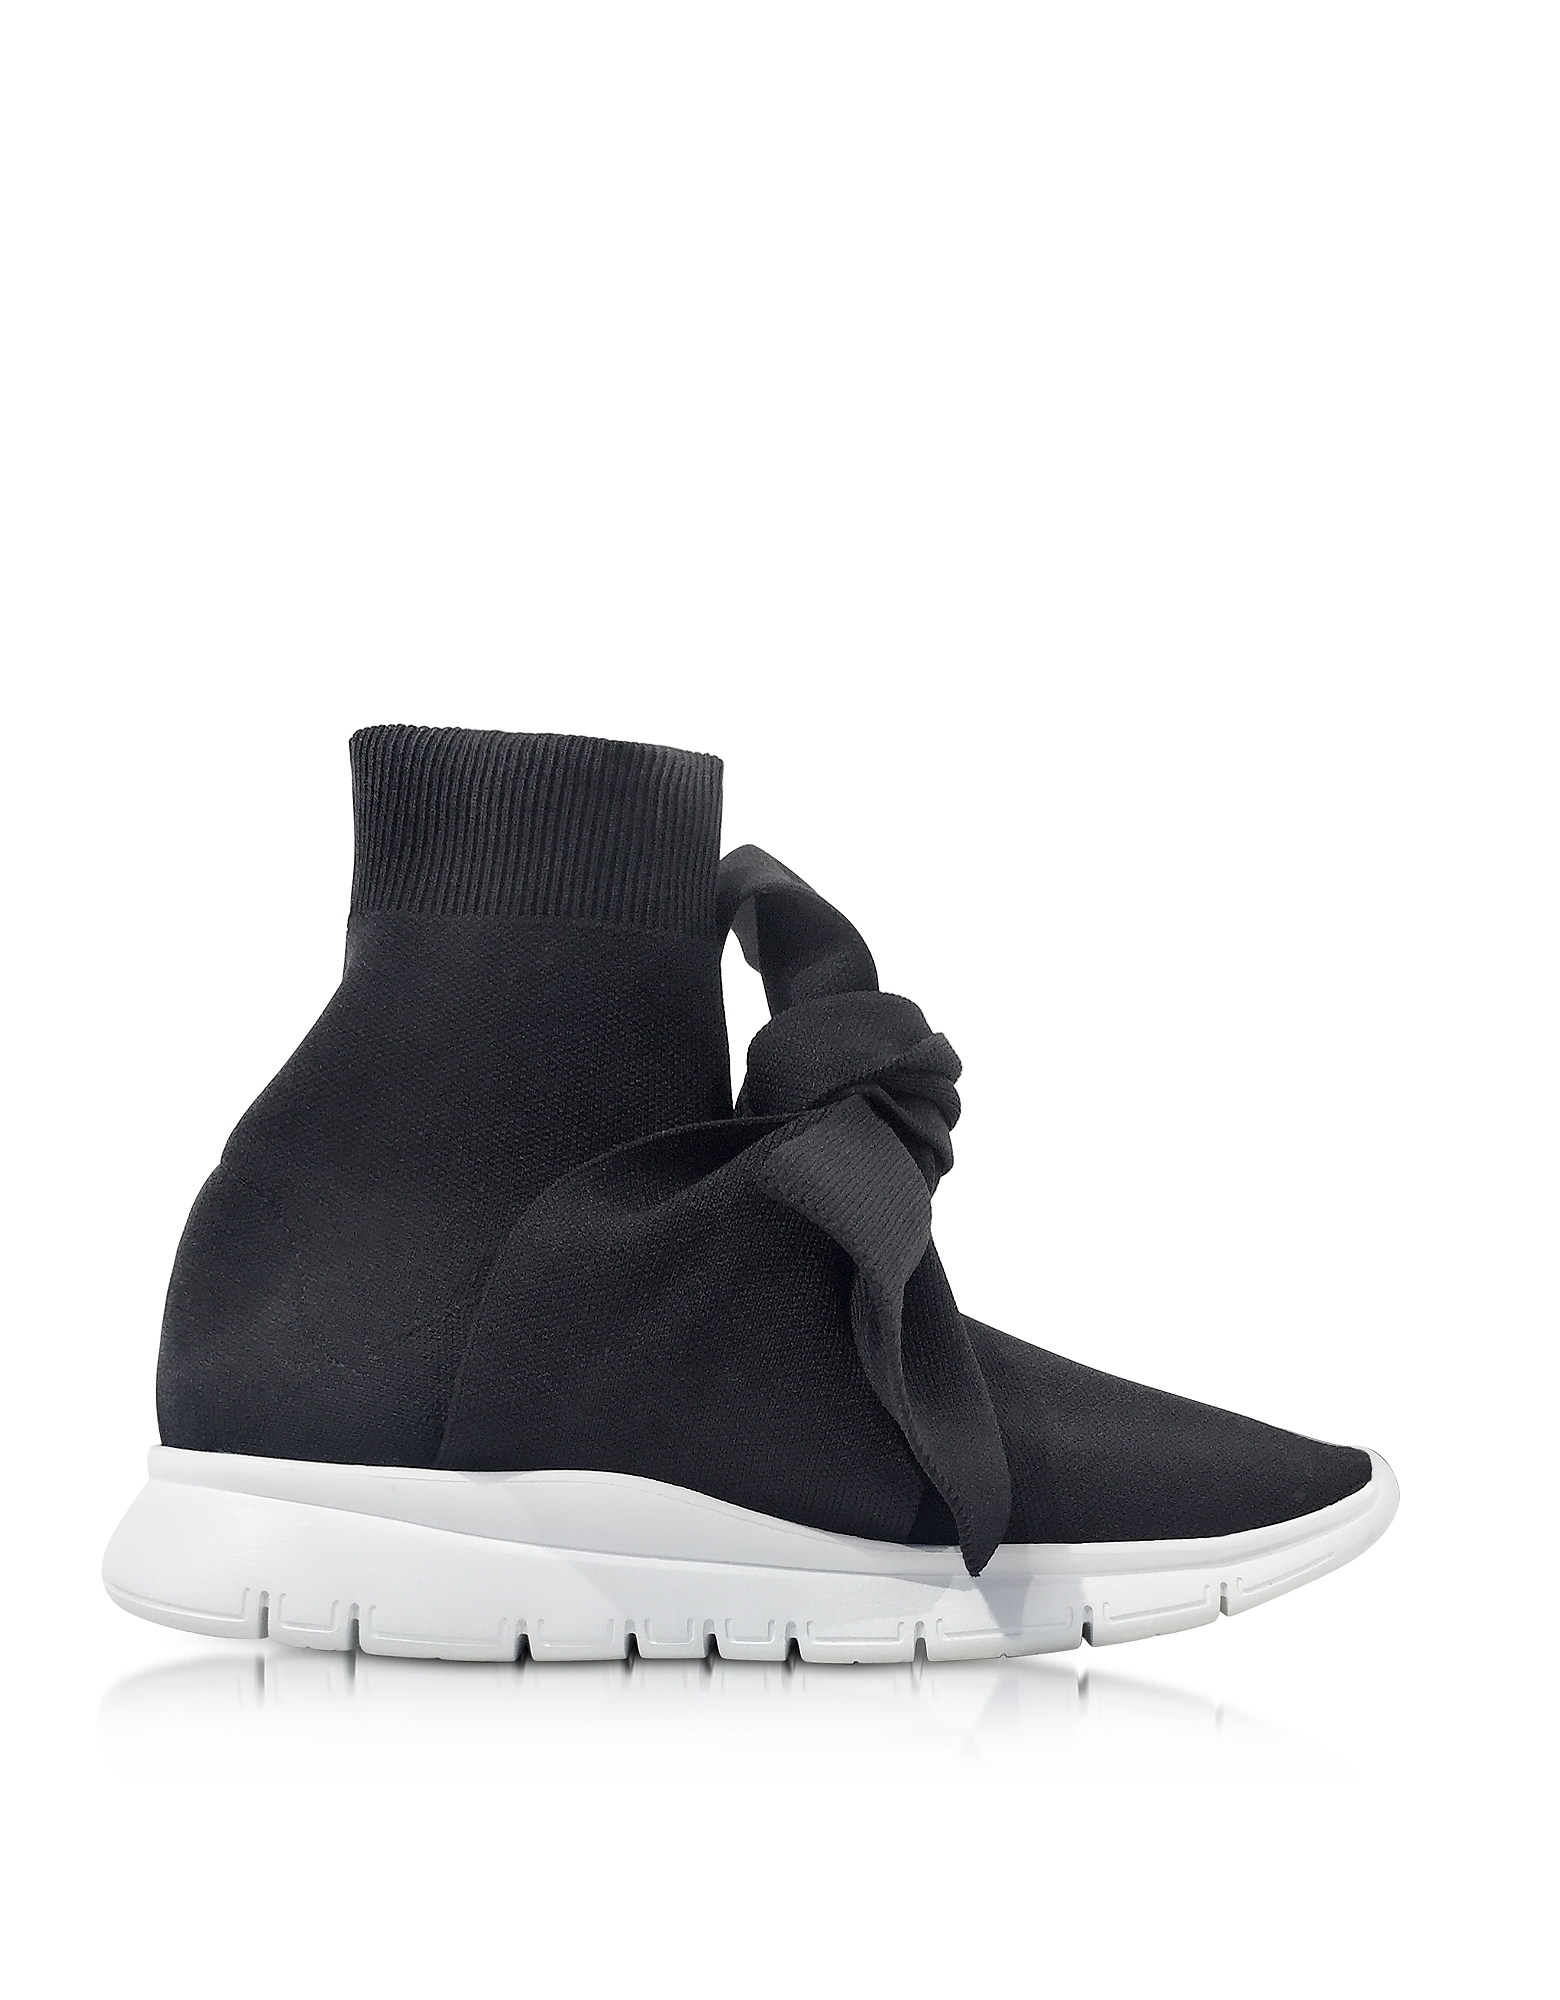 Joshua Sanders Shoes, Knot Black Nylon Sock Sneakers